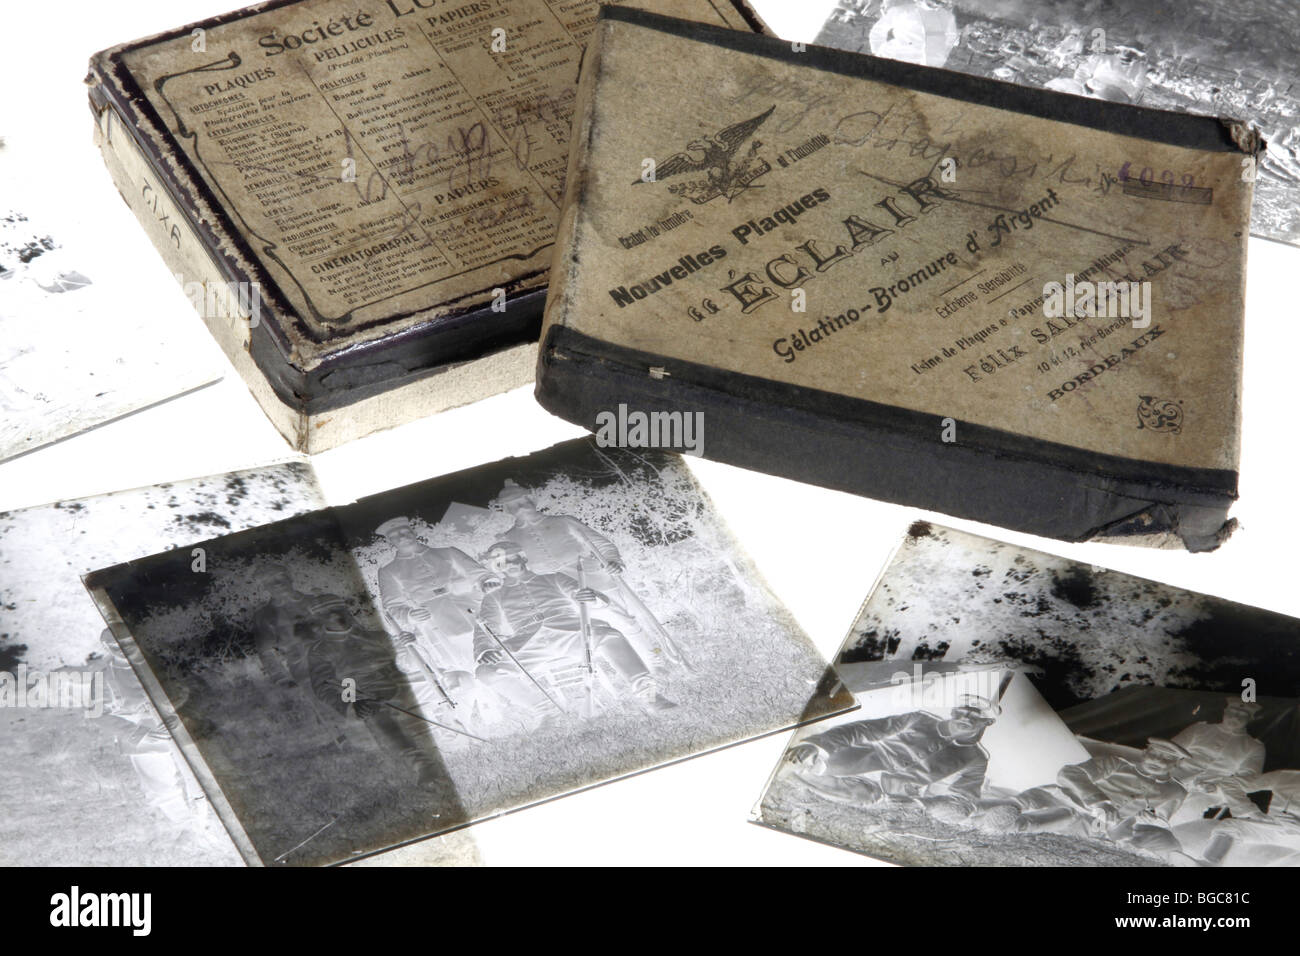 Old exposed silver bromide gelatin glass negatives - Stock Image